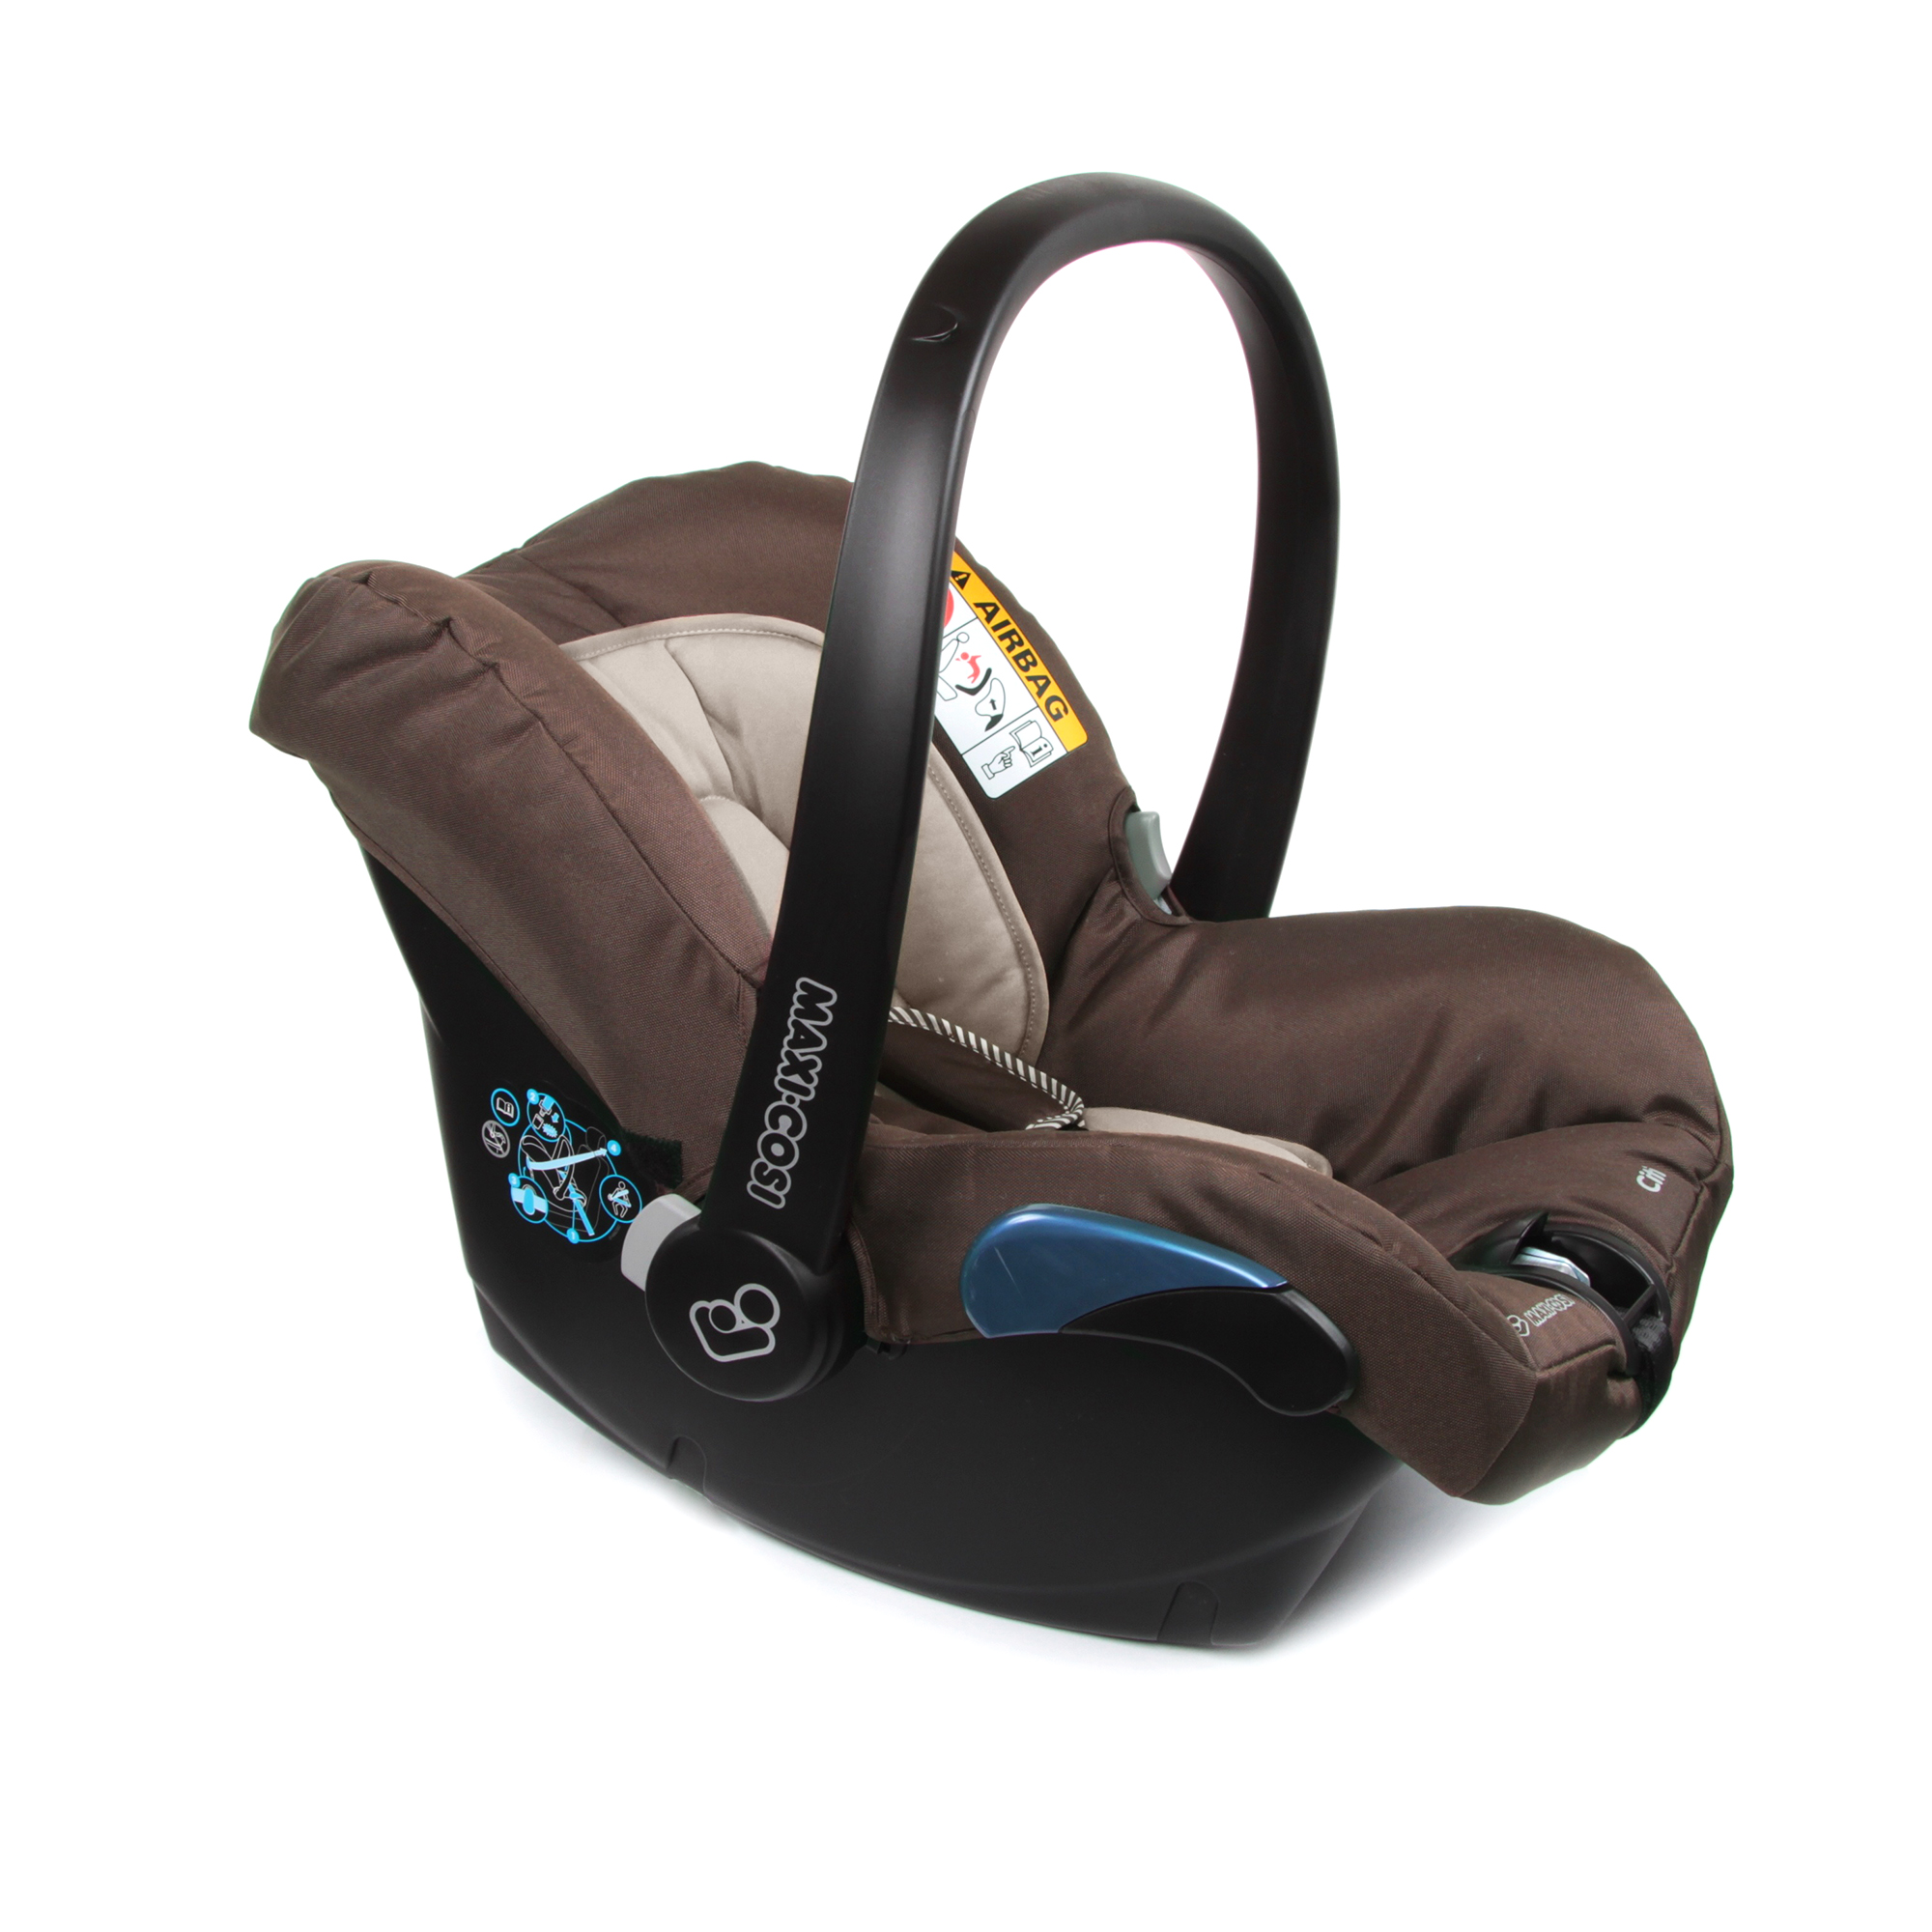 maxi cosi infant car seat citi 2018 earth brown buy at kidsroom car seats. Black Bedroom Furniture Sets. Home Design Ideas